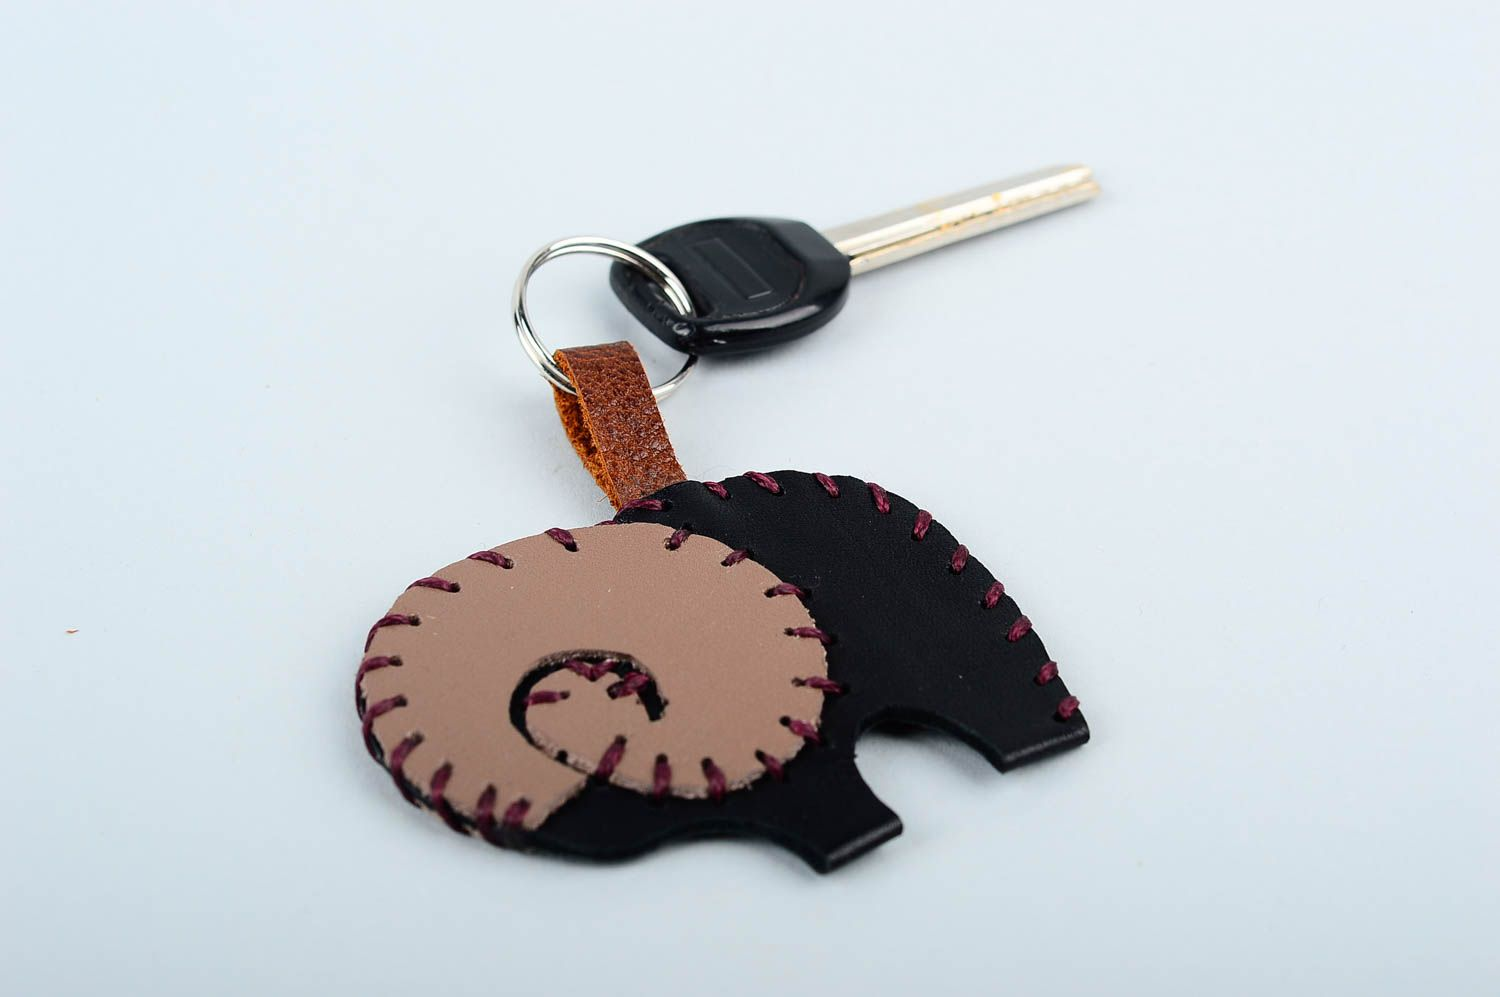 keychains Unusual handmade leather keychain best keychain cool keyrings gift ideas - MADEheart.com